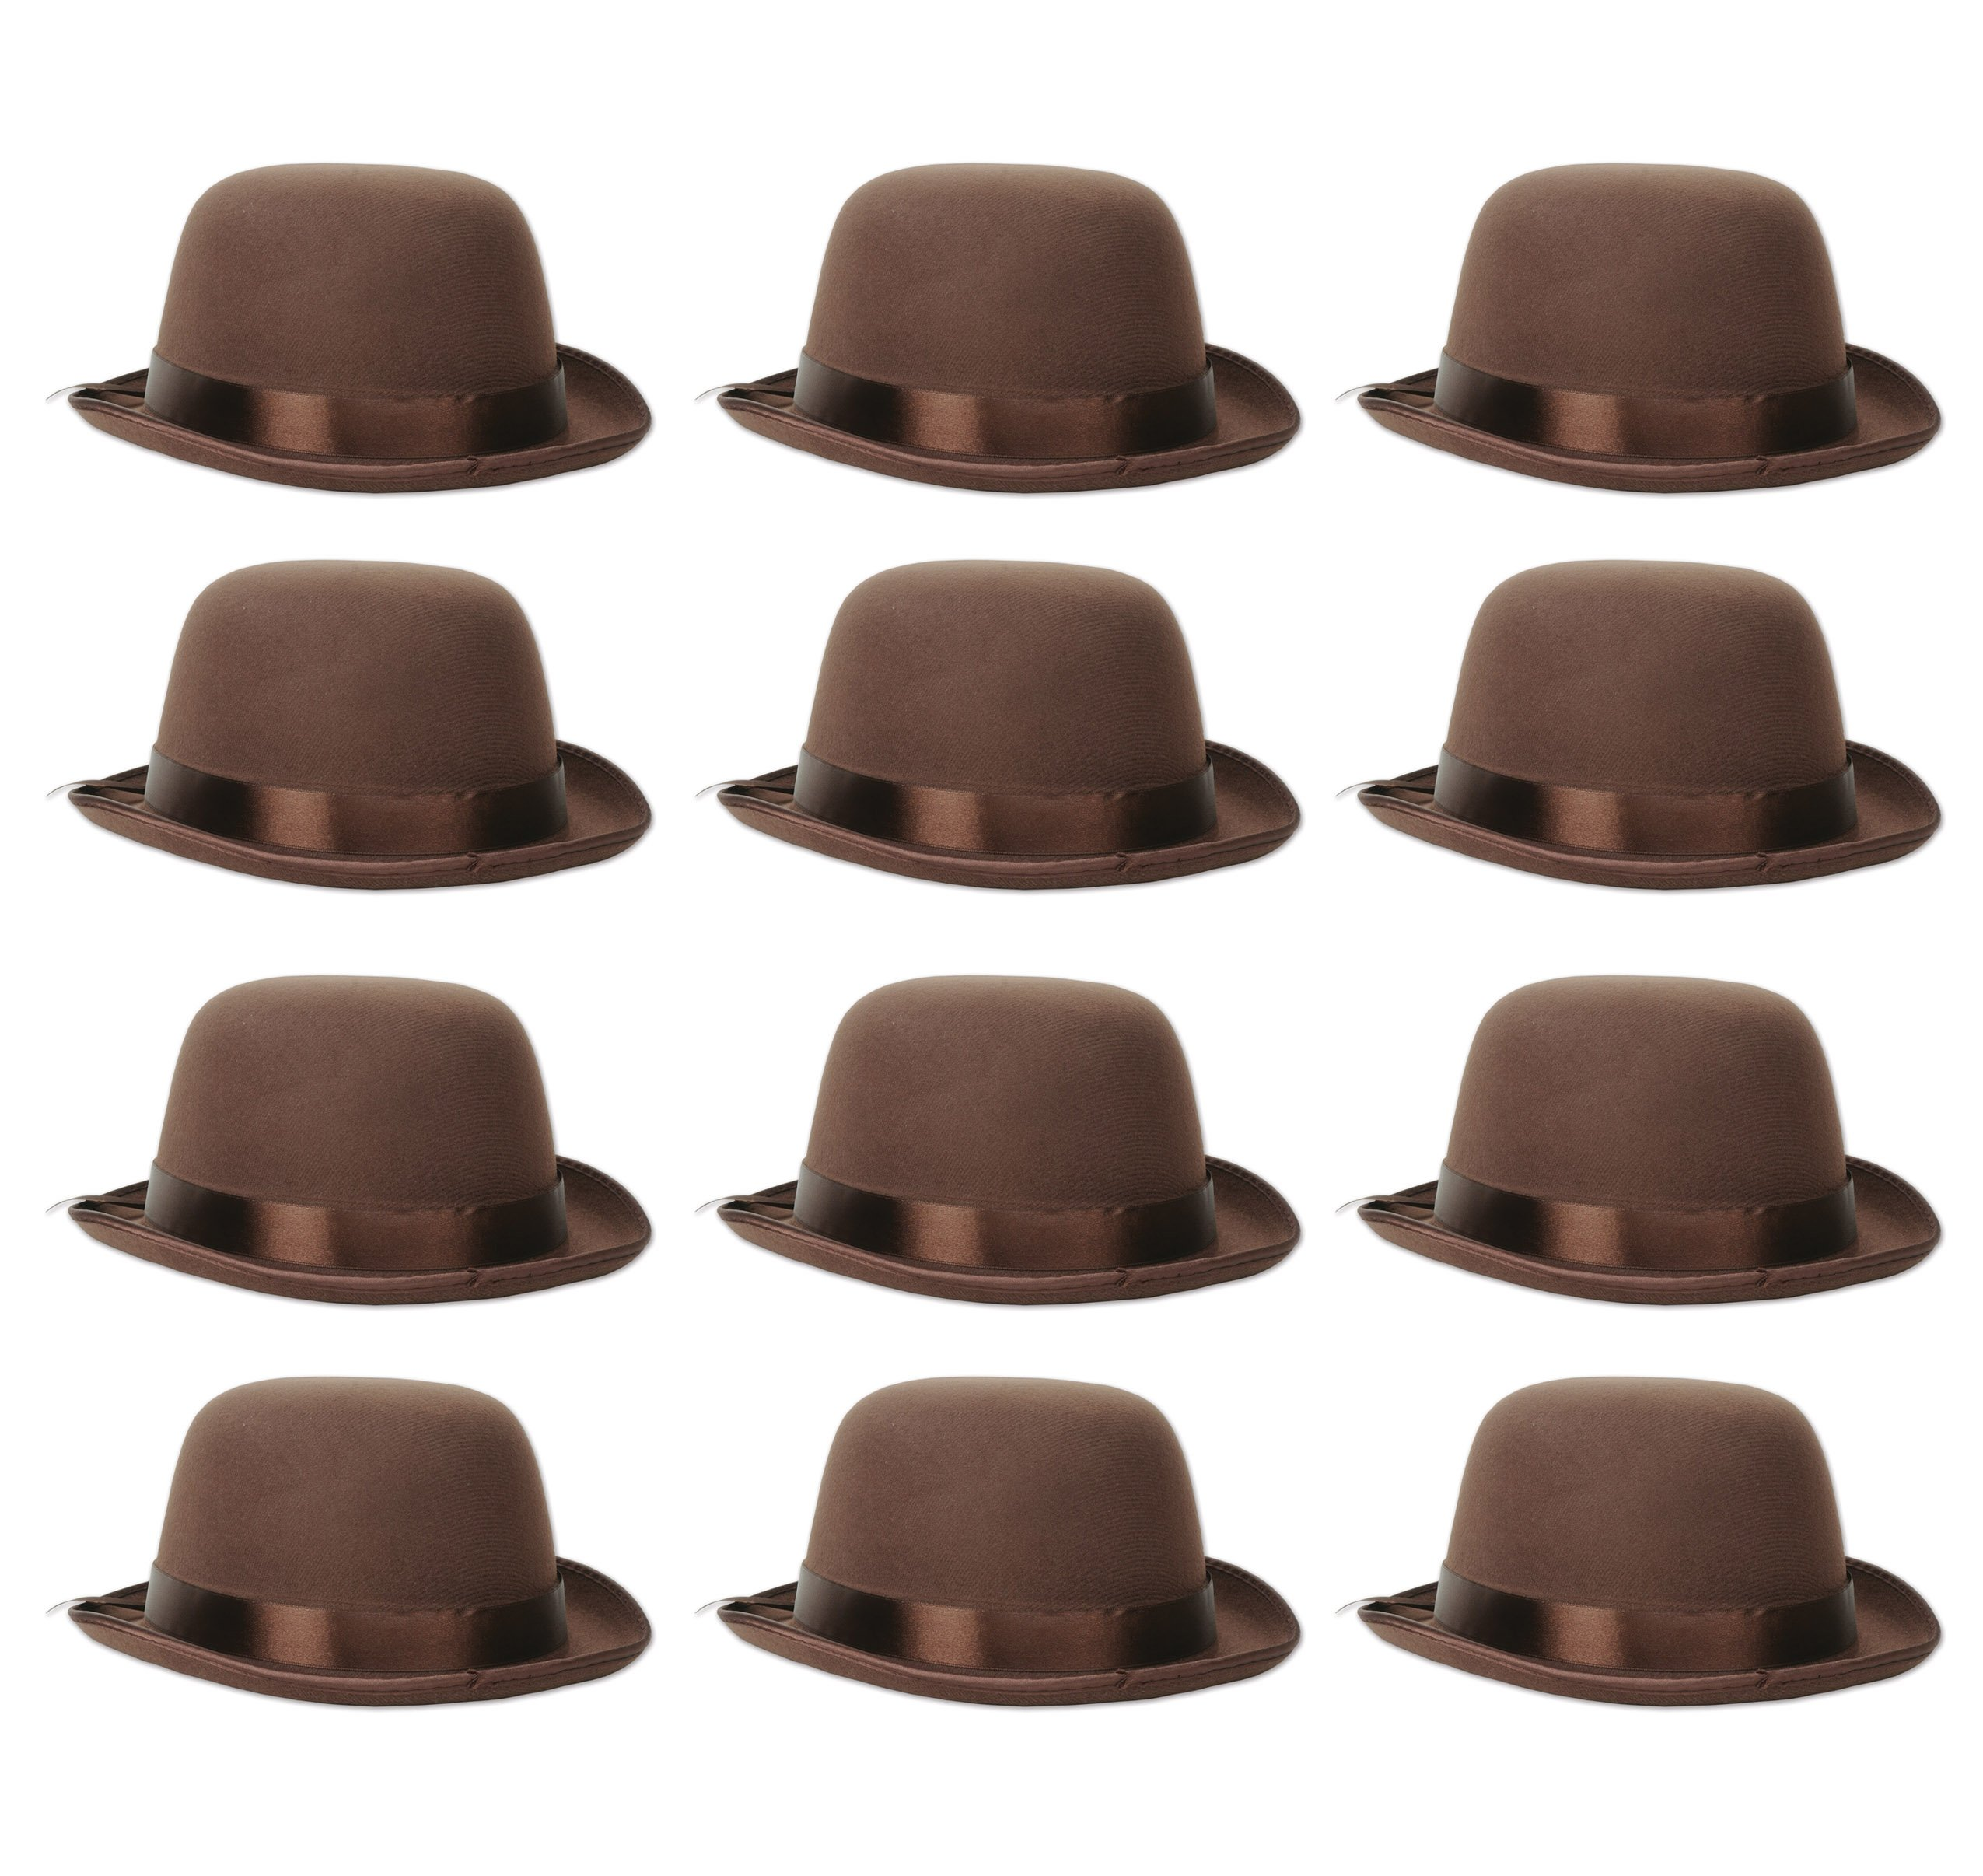 Beistle 60336 12 Piece Bowler Hats, Brown by Beistle